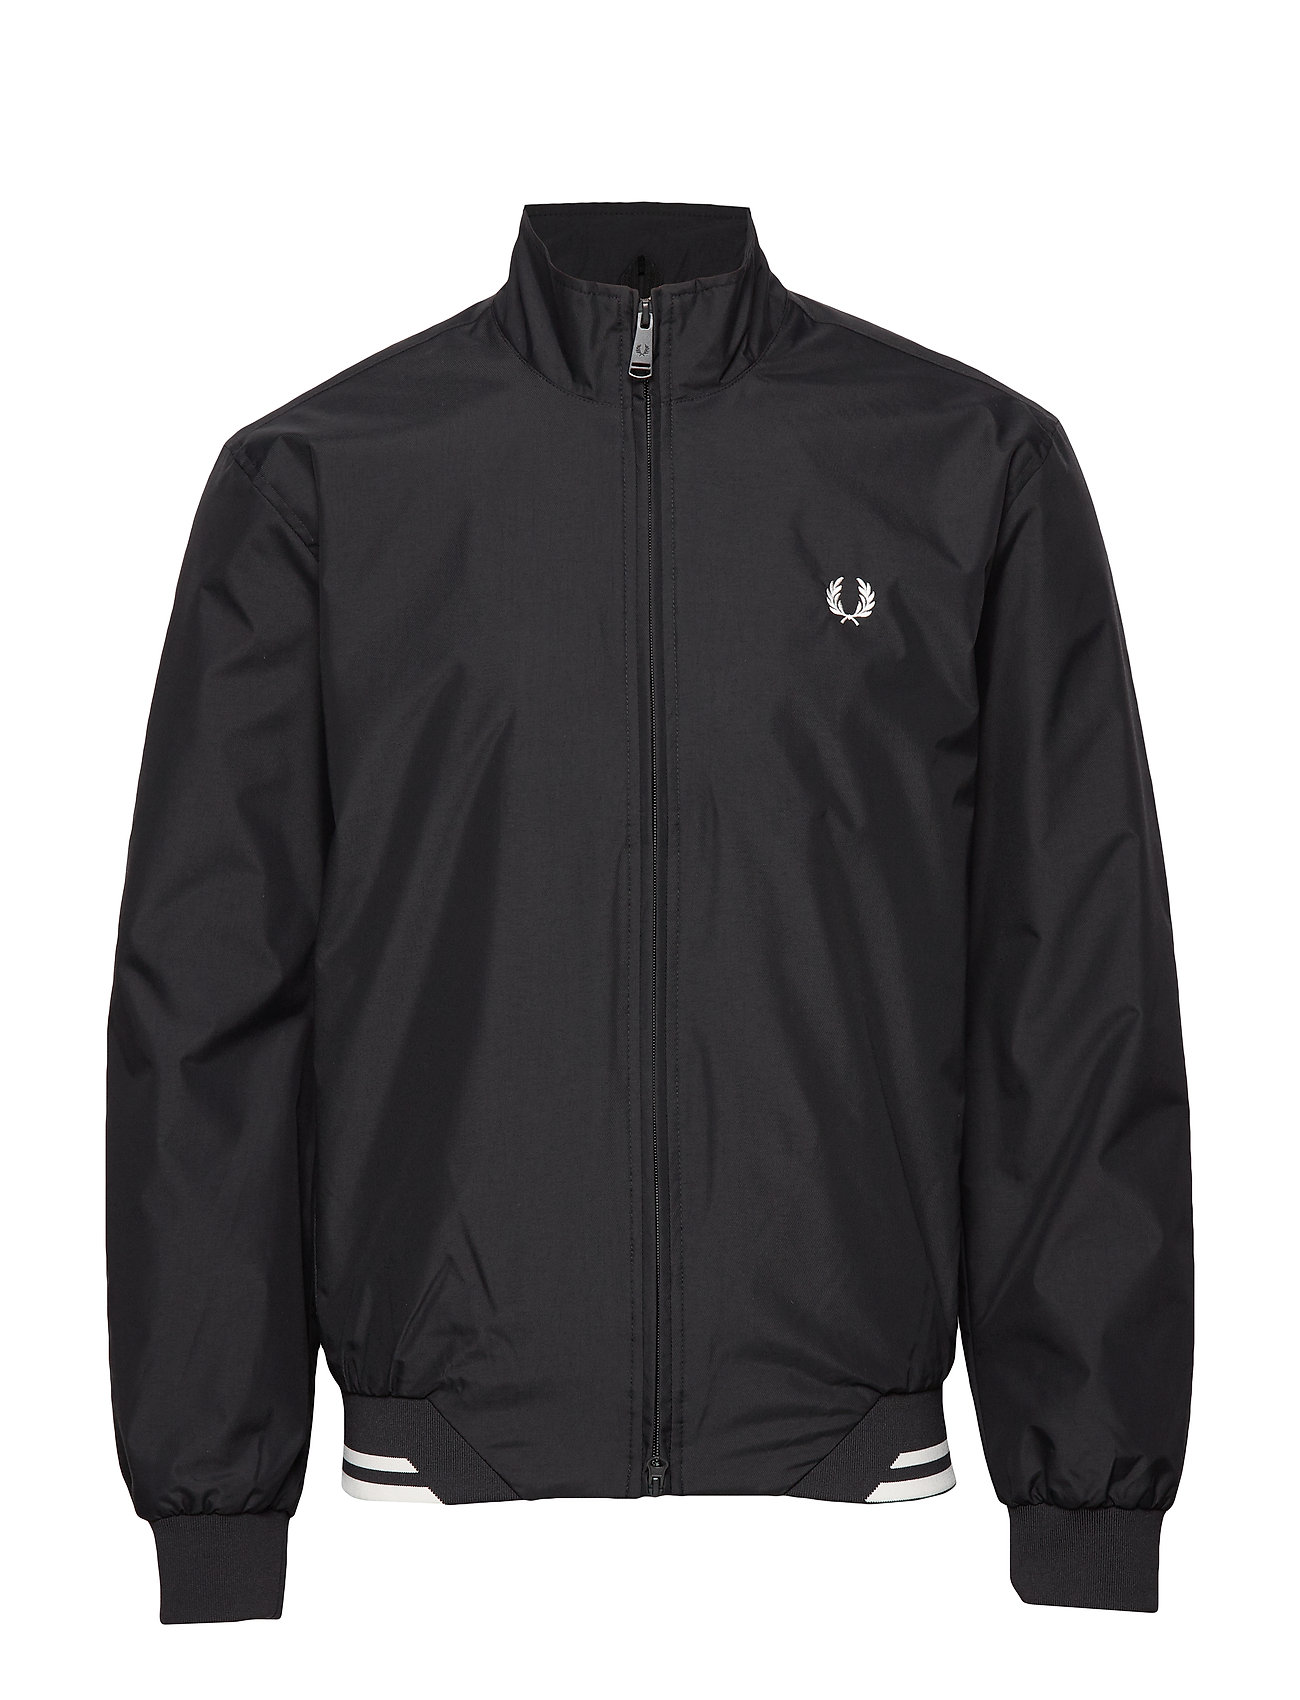 Fred Perry TWIN TIPPED SPORTS JKT - BLACK